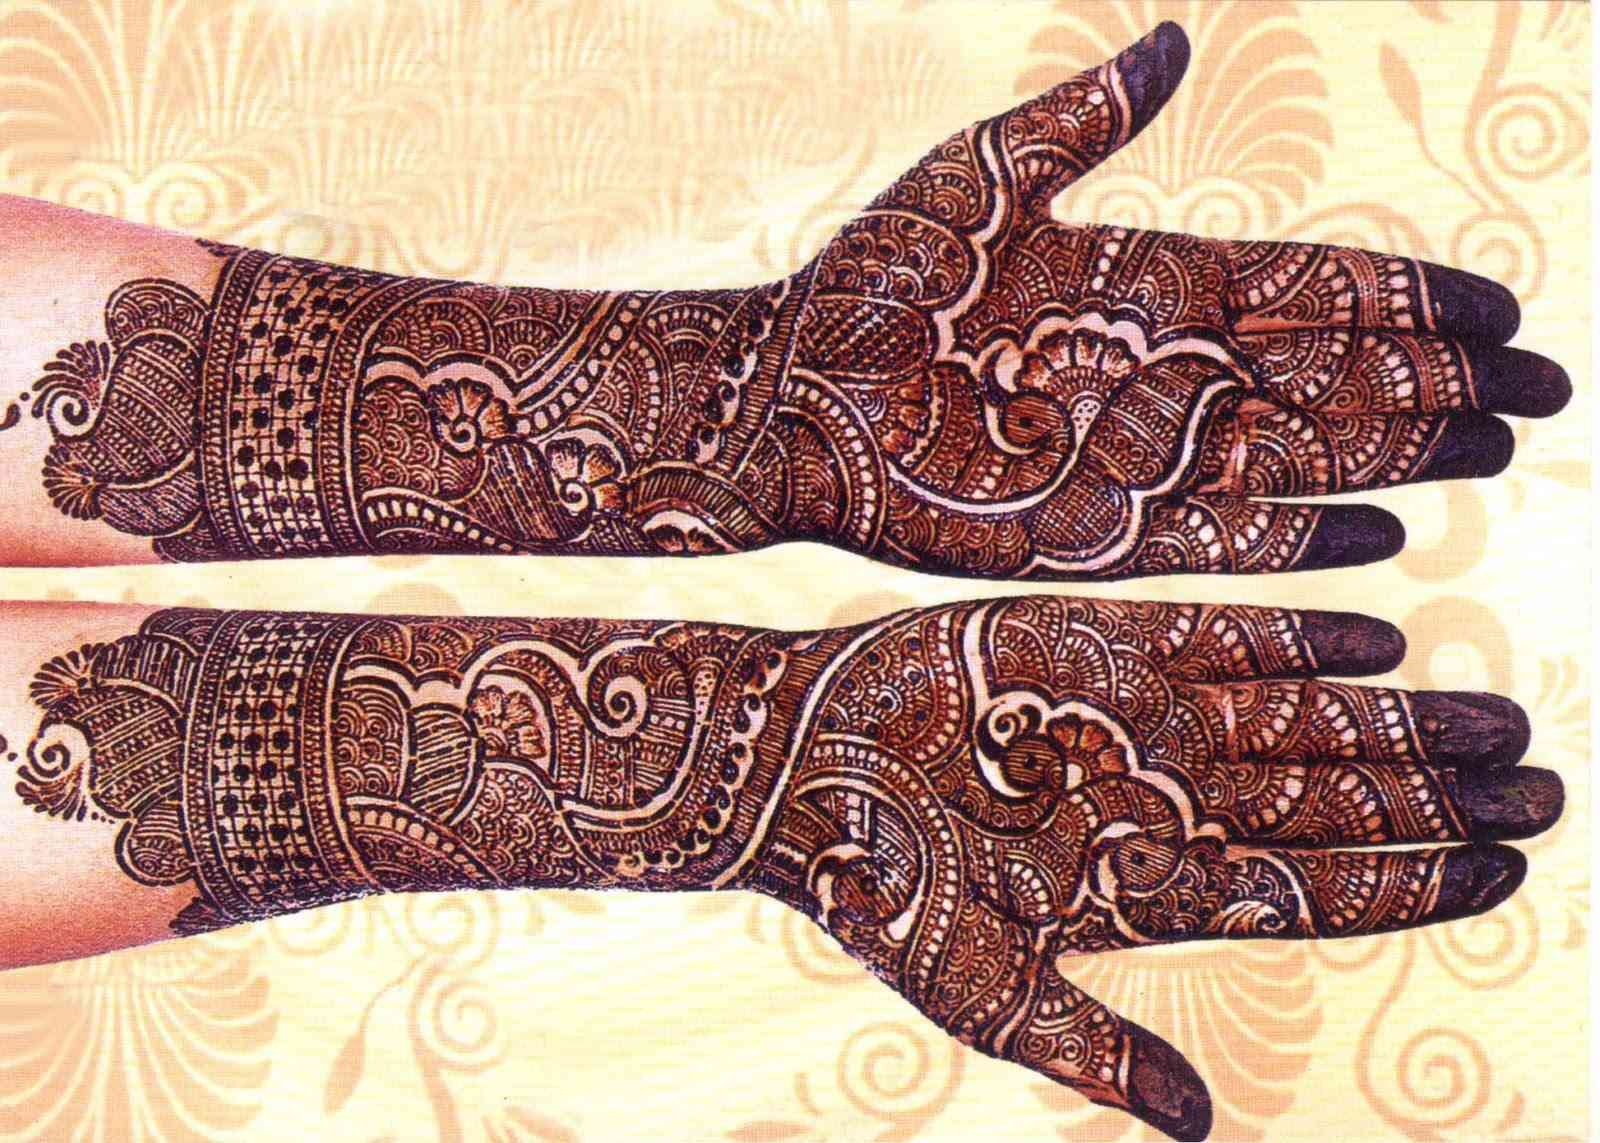 Mehndi Art HD Wallpaper Gallery provide you a huge ammount